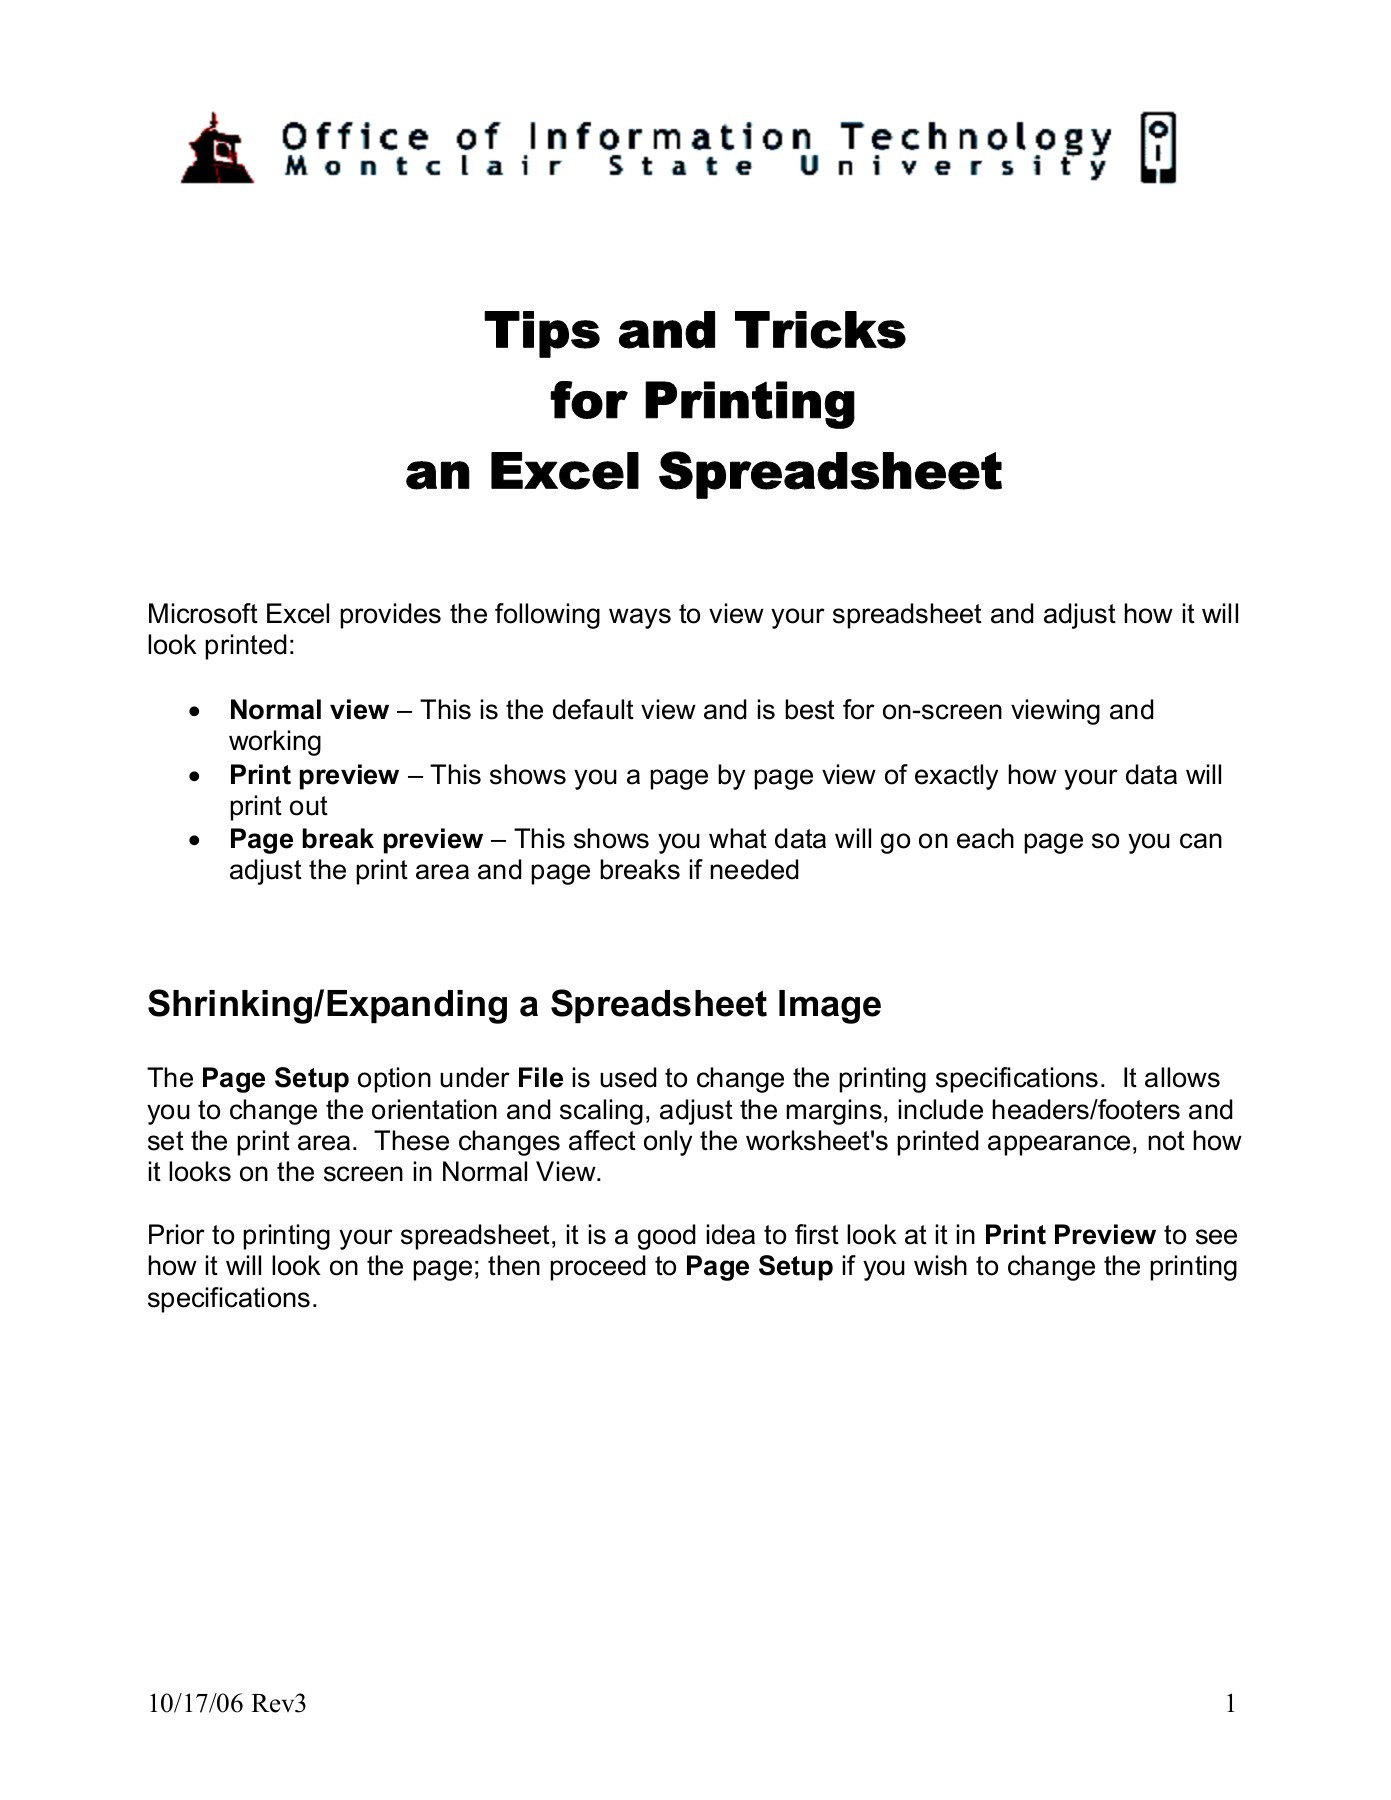 Excel - Tips and Tricks for Printing an Excel Spreadsheet ...